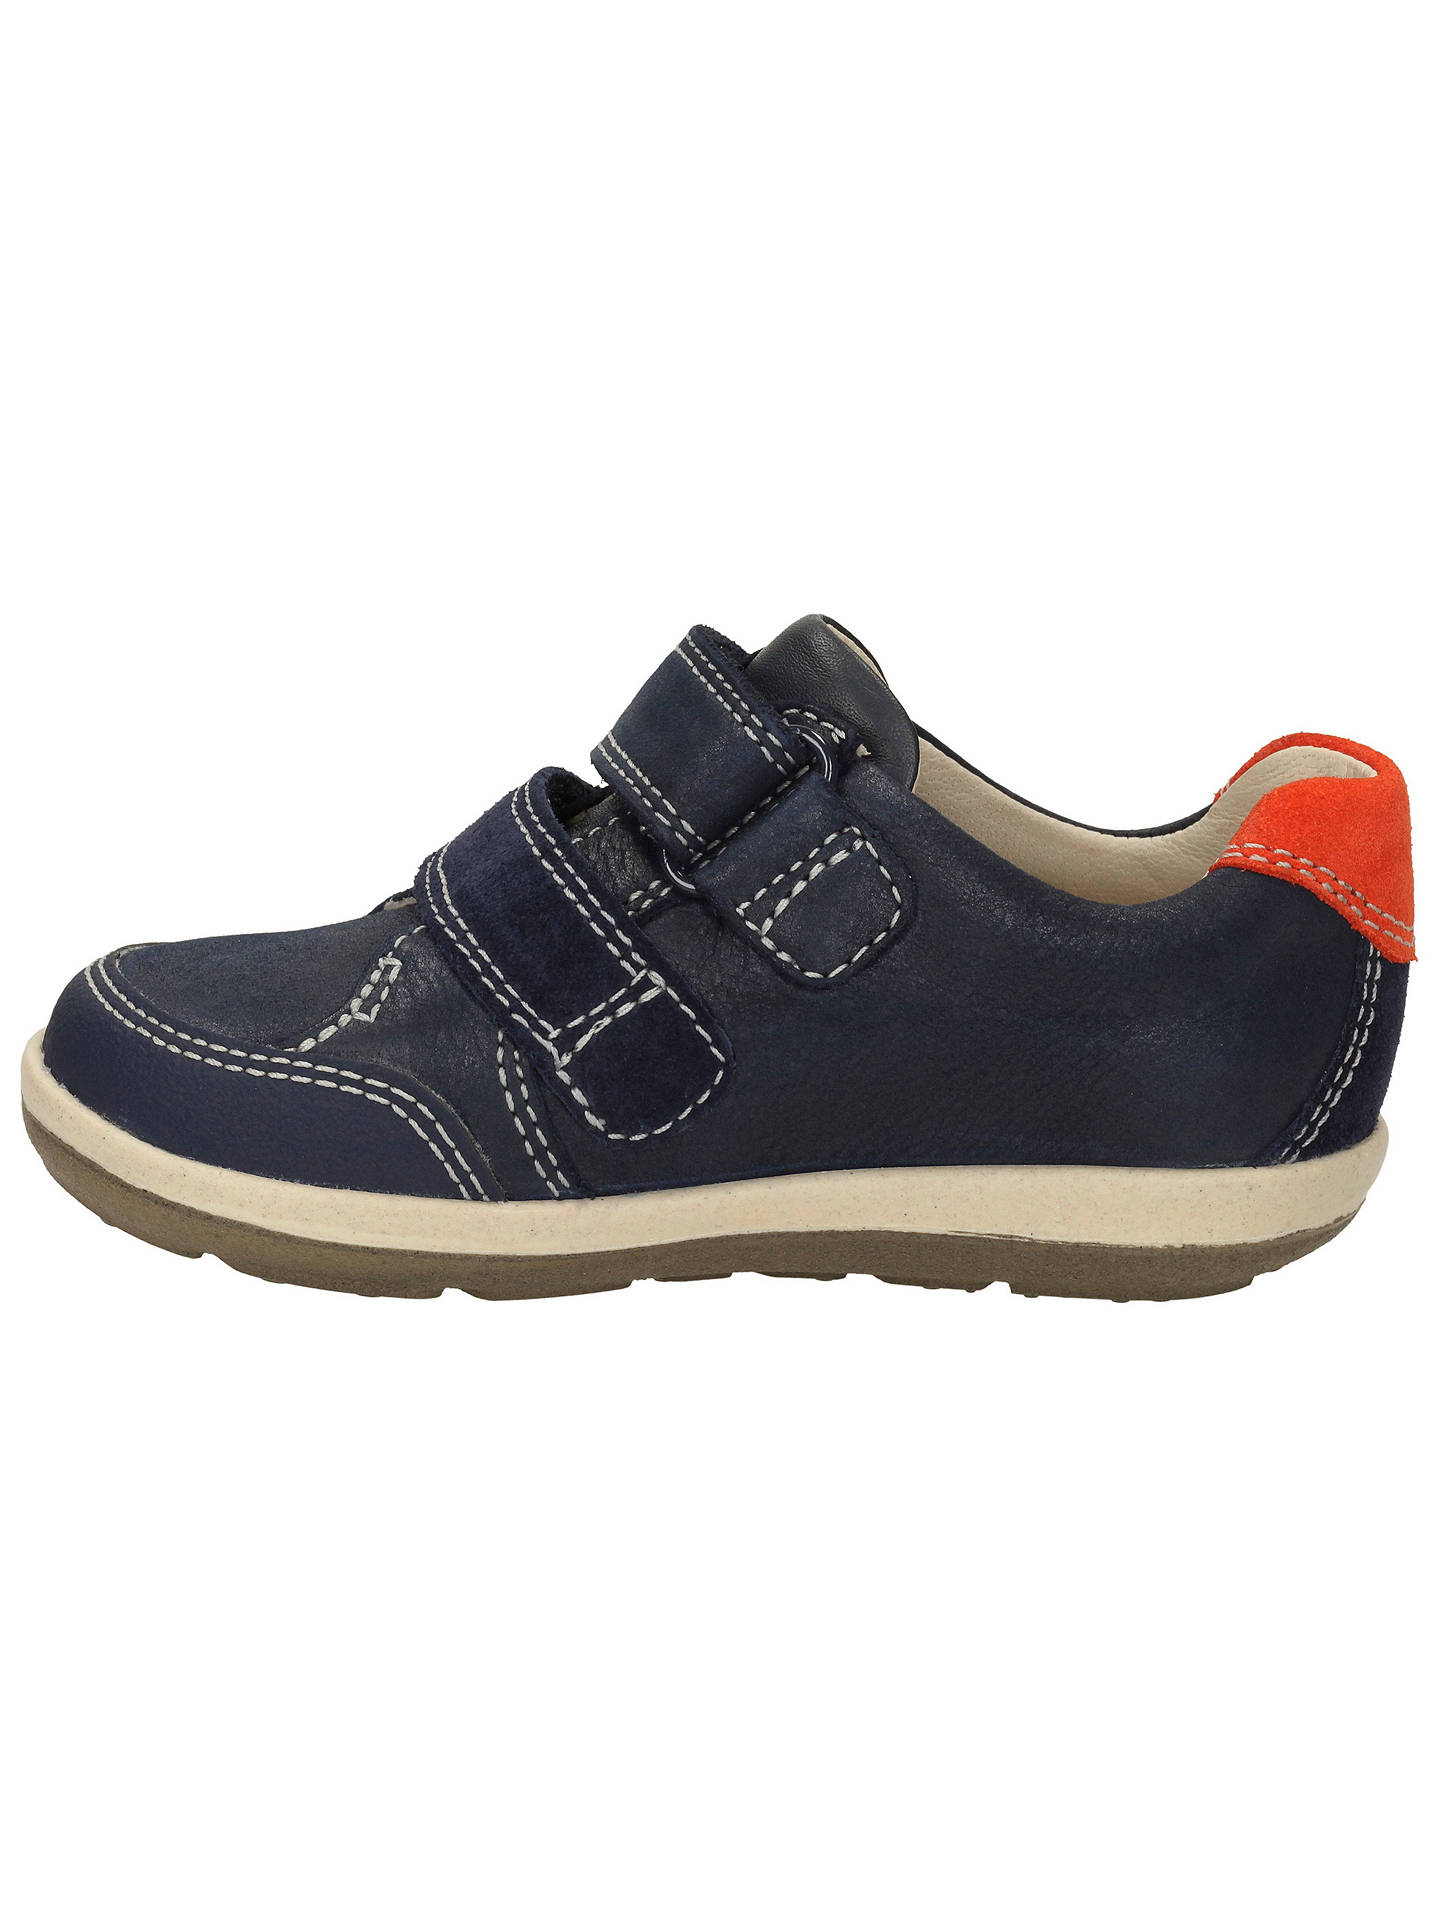 bbc053b8907 Buy Clarks Children's Softly Tom Leather Shoes, Navy, 4F Jnr Online at  johnlewis.